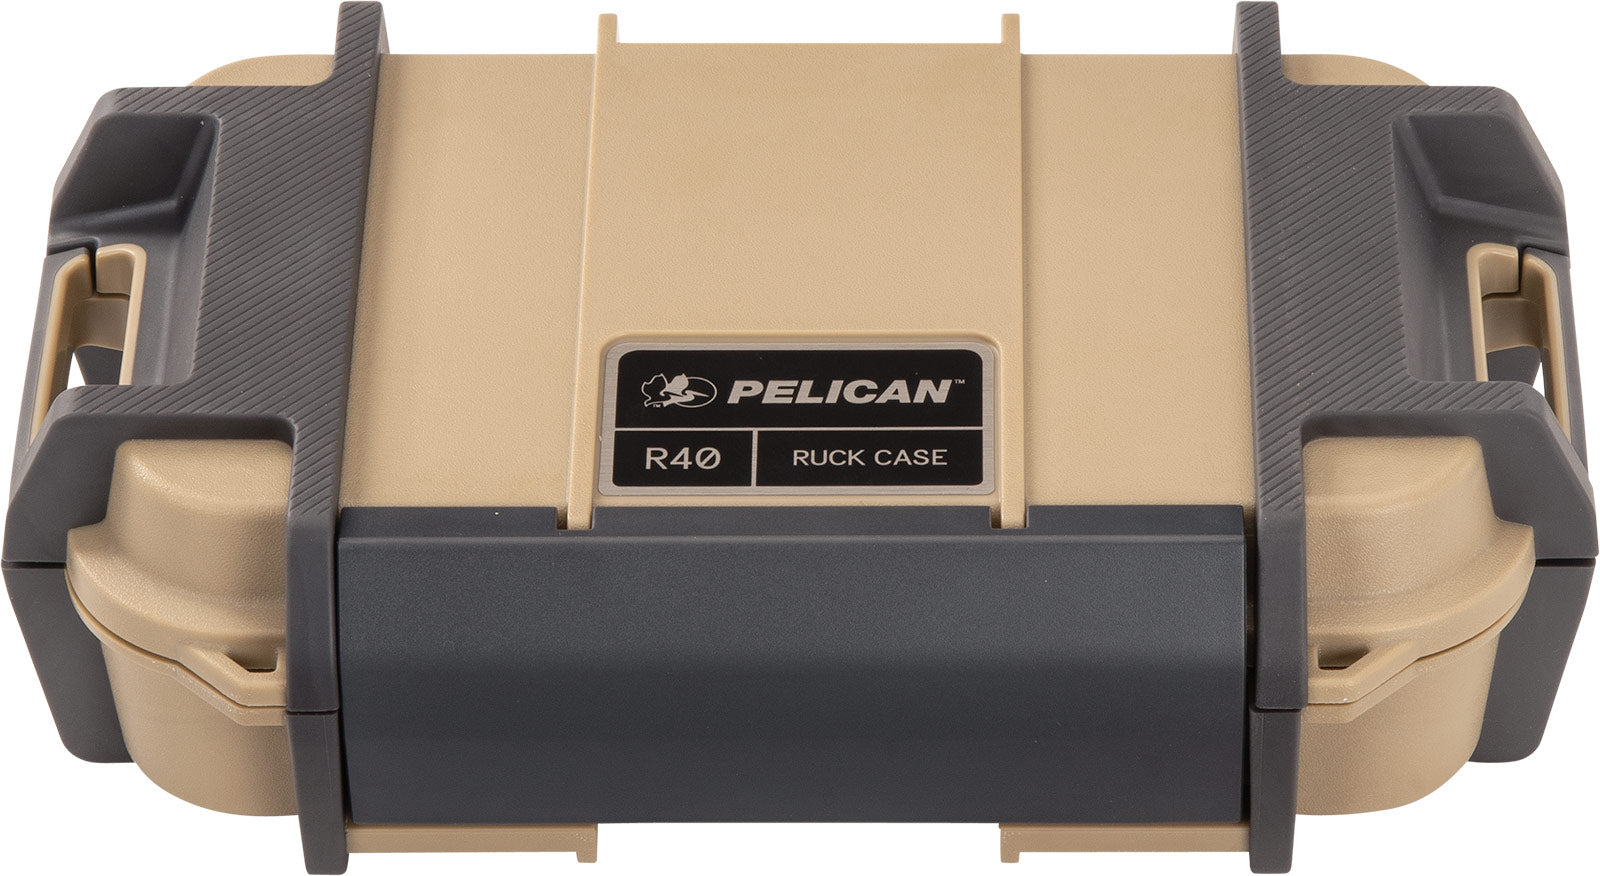 Pelican - R40 Personal Utility Ruck Case (Tan)